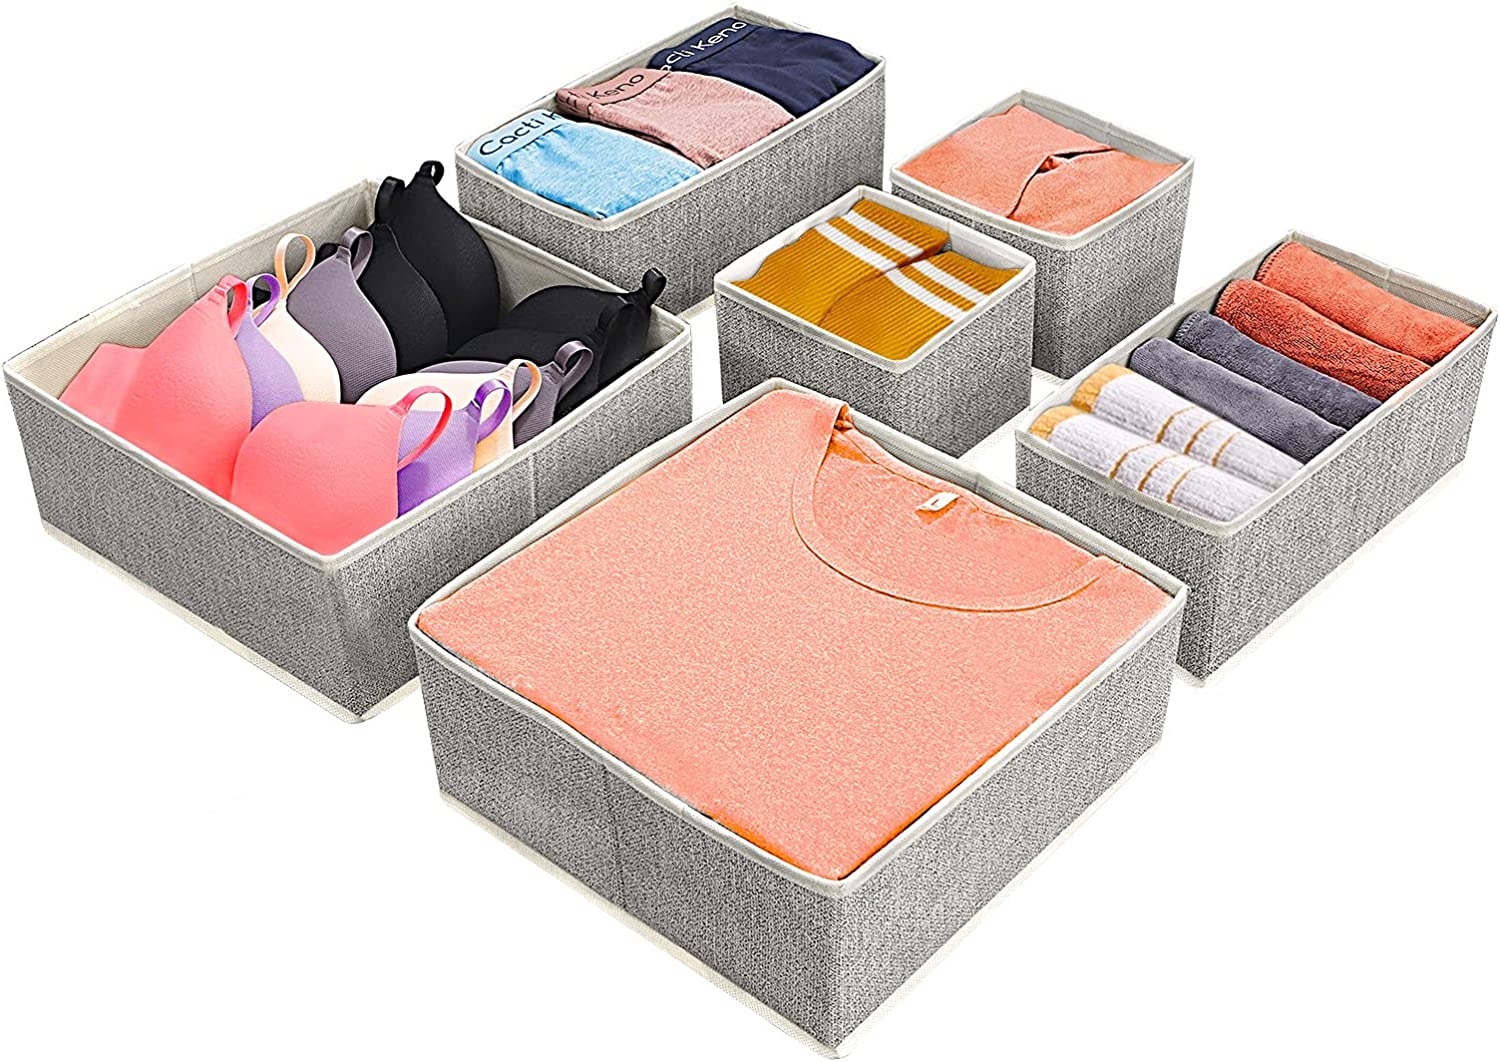 Underwear Drawer Organizers Max 50% OFF Clothes Foldable Organize Bra Free shipping / New Closet